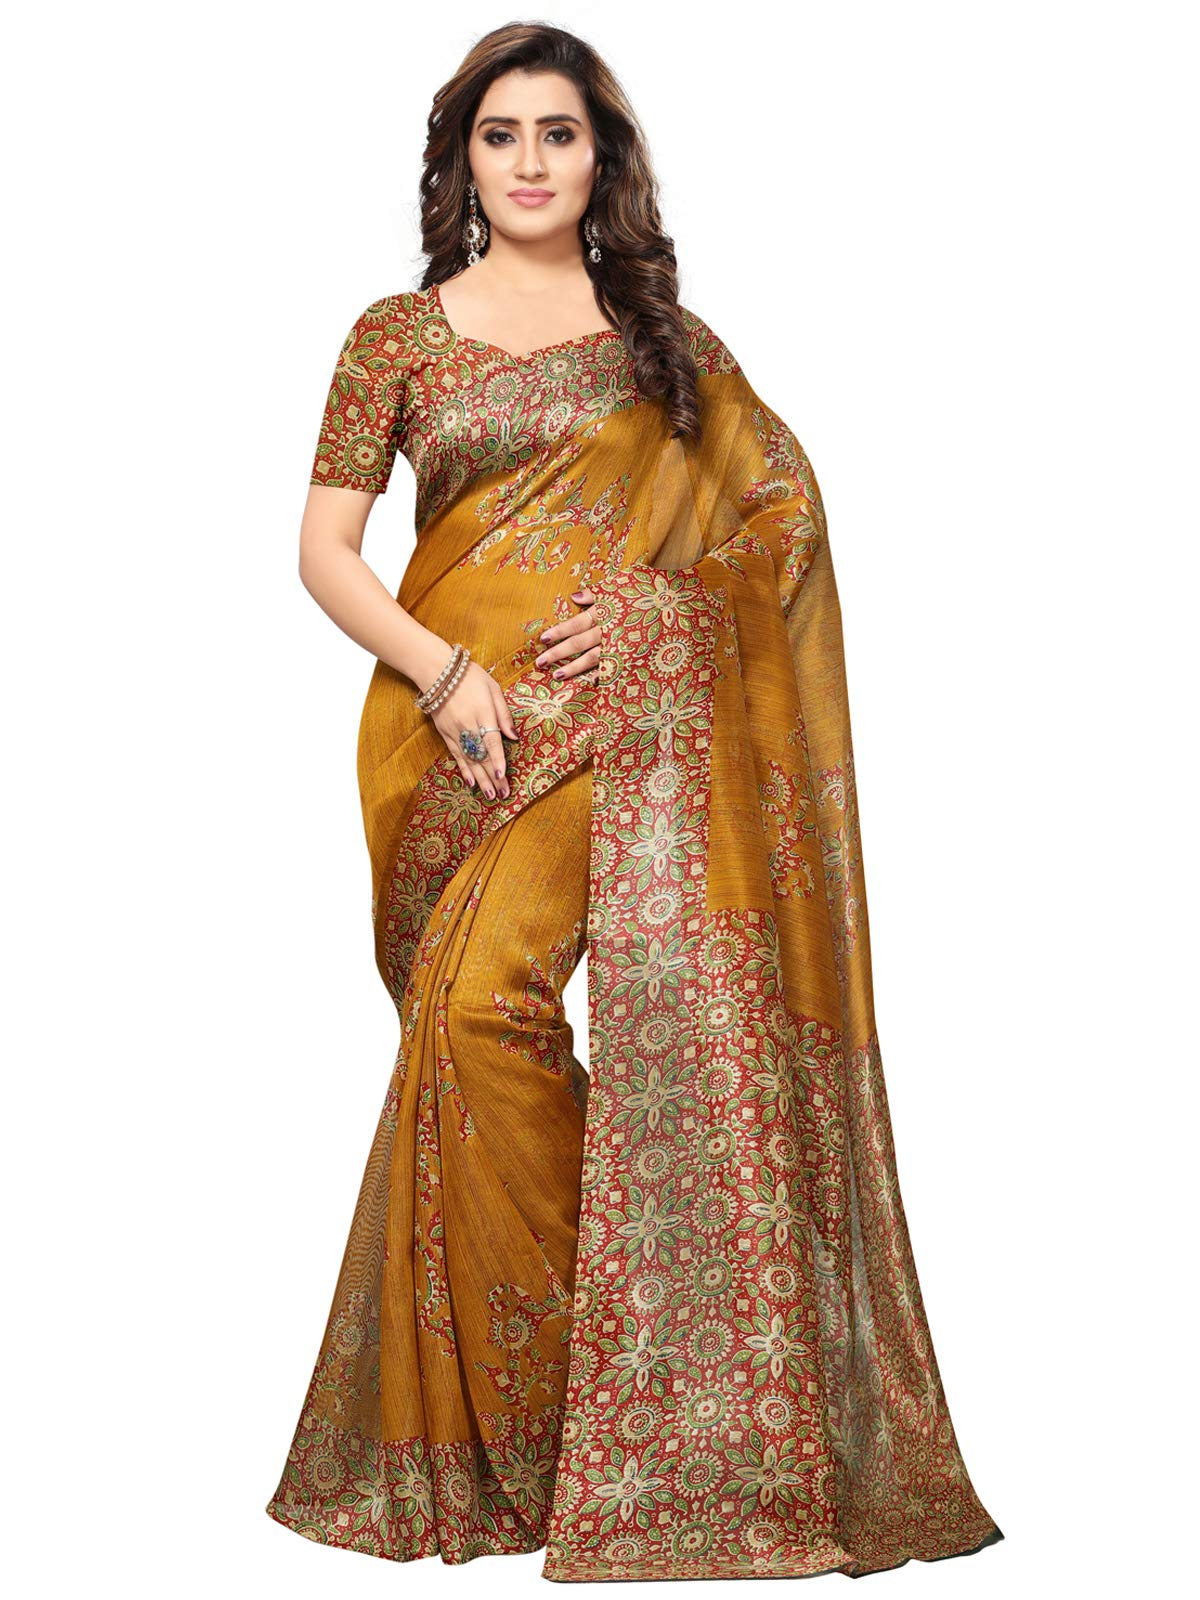 Kanchnar Women's Yellow Art Silk Printed Saree